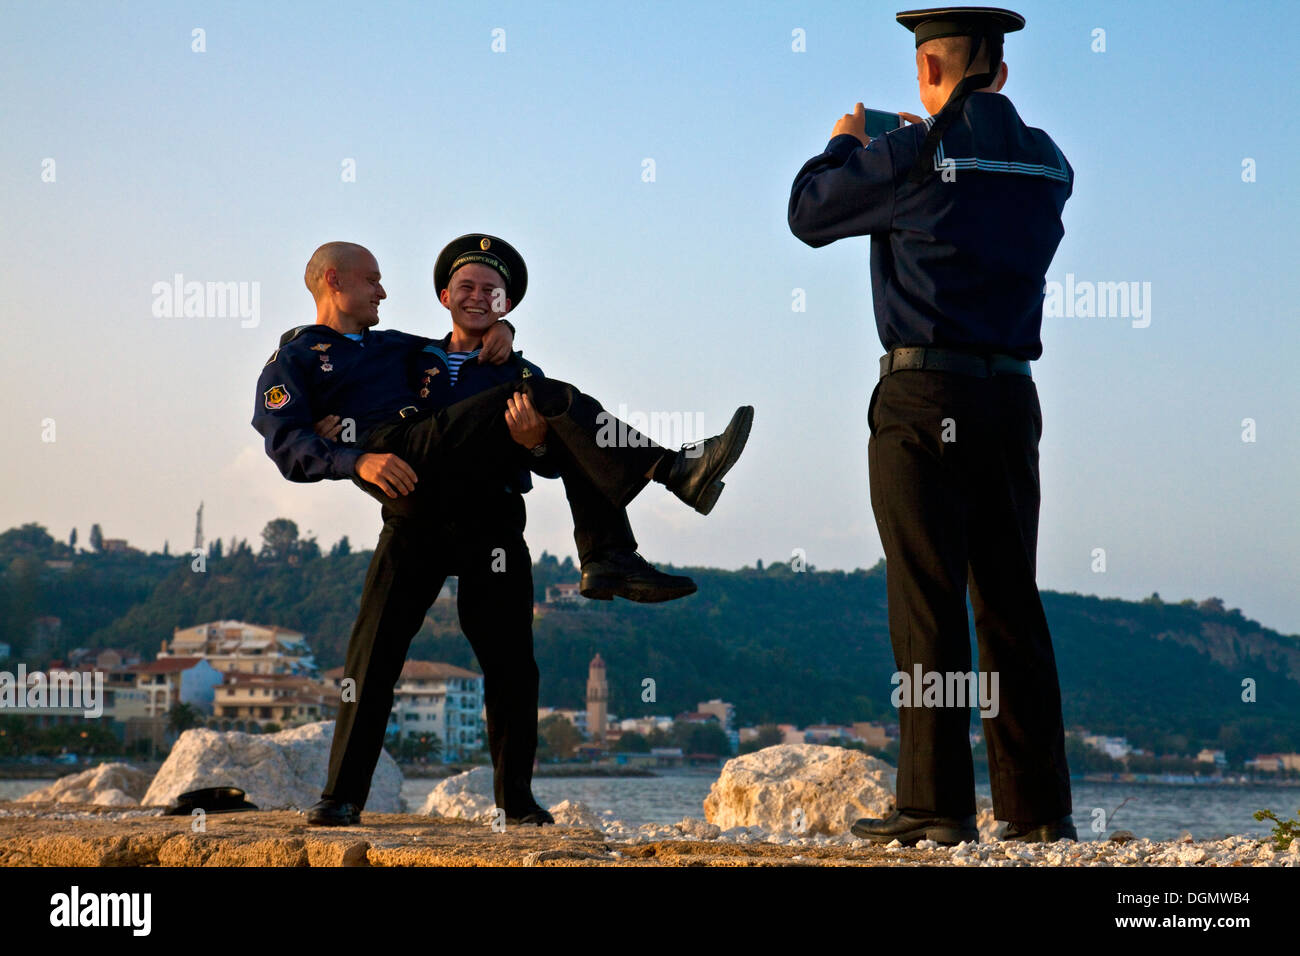 Russian Sailors On Shore Leave, Zakynthos Town, Zakynthos (Zante) Island, Greece - Stock Image